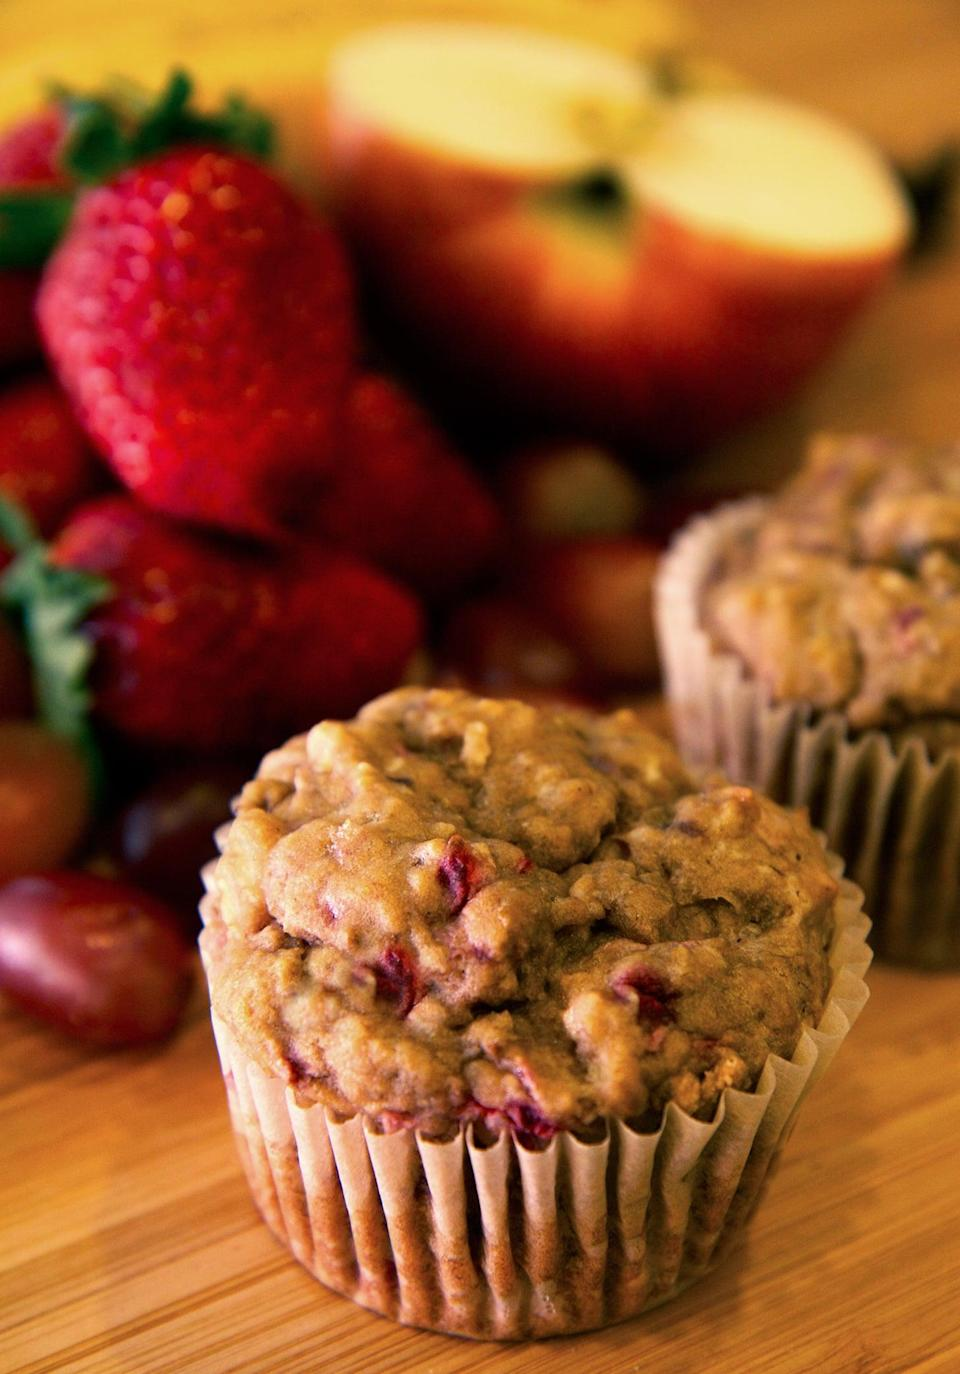 "<p>Skip the added sugars and bake these fruit-sweetened muffins. And don't worry if your strawberries are a little shriveled or your grapes a little soft - just like the bananas, they bake up beautifully so they won't have to go to waste. </p> <p><strong>Calories:</strong> 100 per muffin<br> <strong>Protein:</strong> 1.5 grams</p> <p><strong>Get the recipe:</strong> <a href=""https://www.popsugar.com/fitness/Banana-Muffin-Recipe-33241326"" class=""link rapid-noclick-resp"" rel=""nofollow noopener"" target=""_blank"" data-ylk=""slk:banana strawberry apple grape muffins"">banana strawberry apple grape muffins</a></p>"